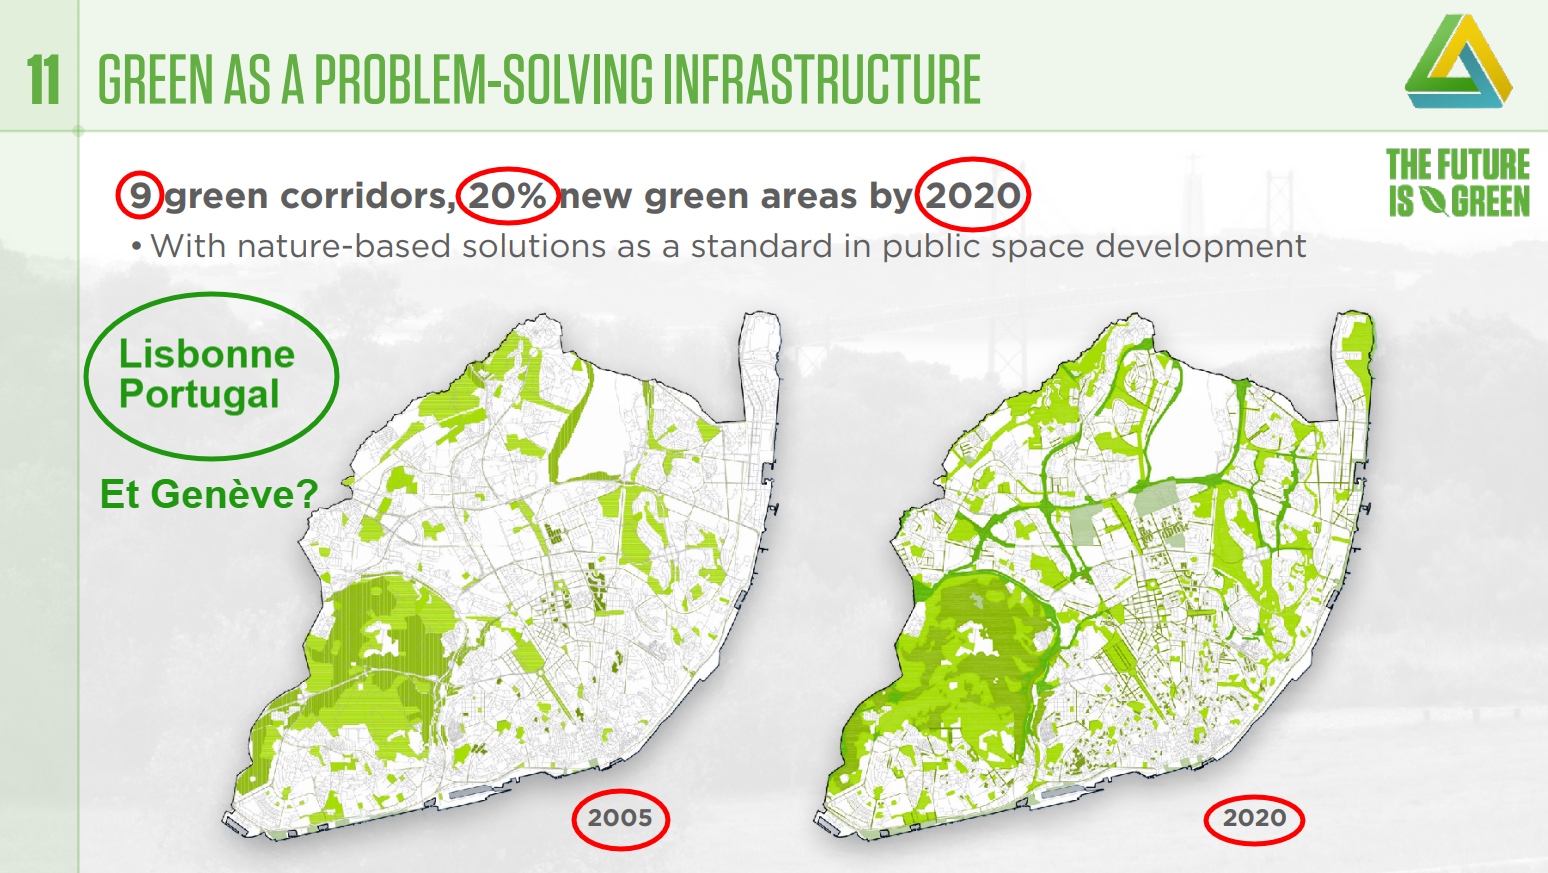 Green as a problem-solving infrastructure